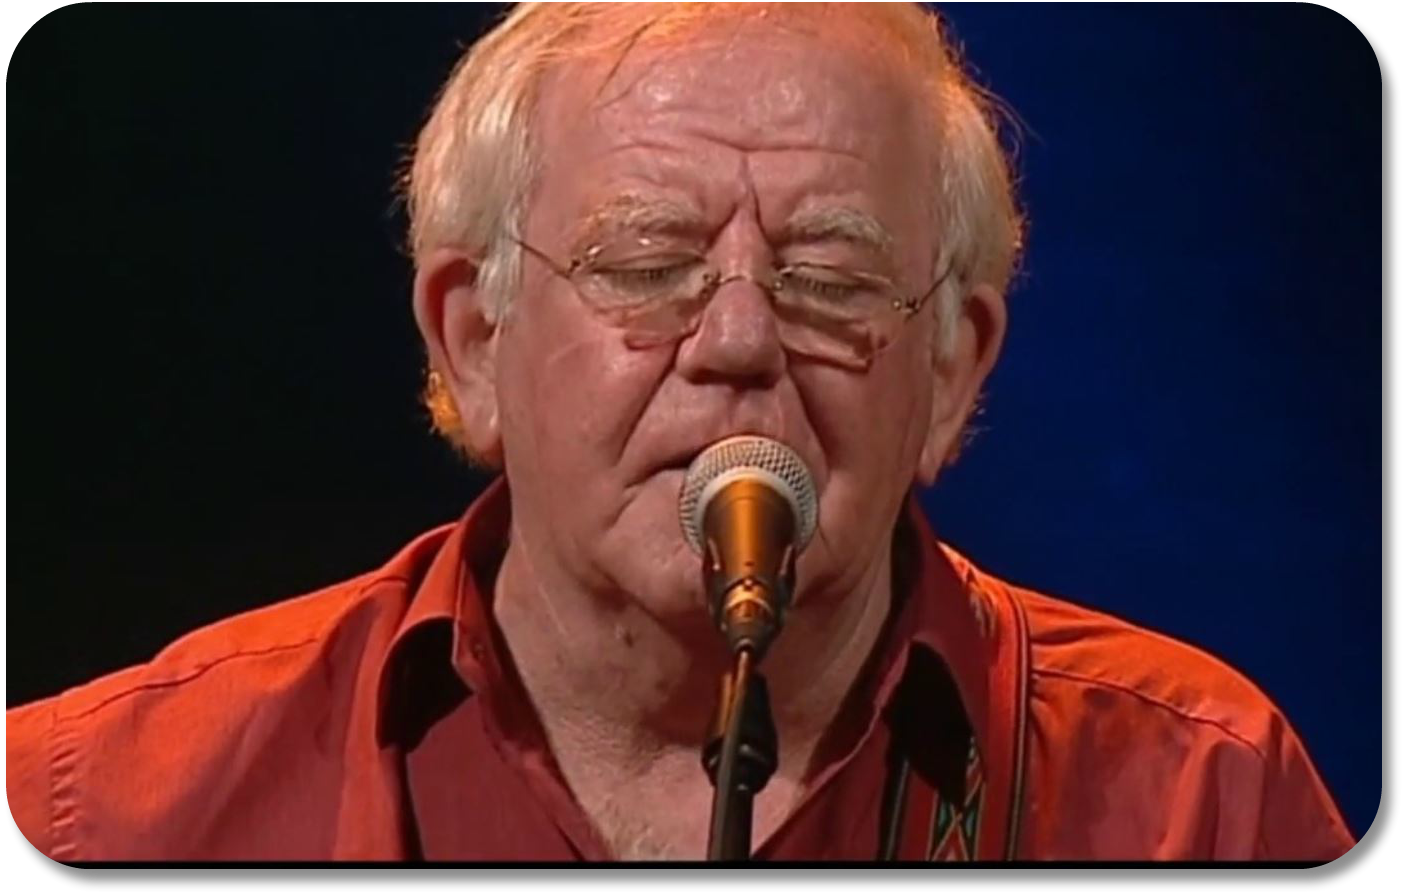 Irish Expressions - Paddy Reilly sings Fields of Athenry via YouTube.